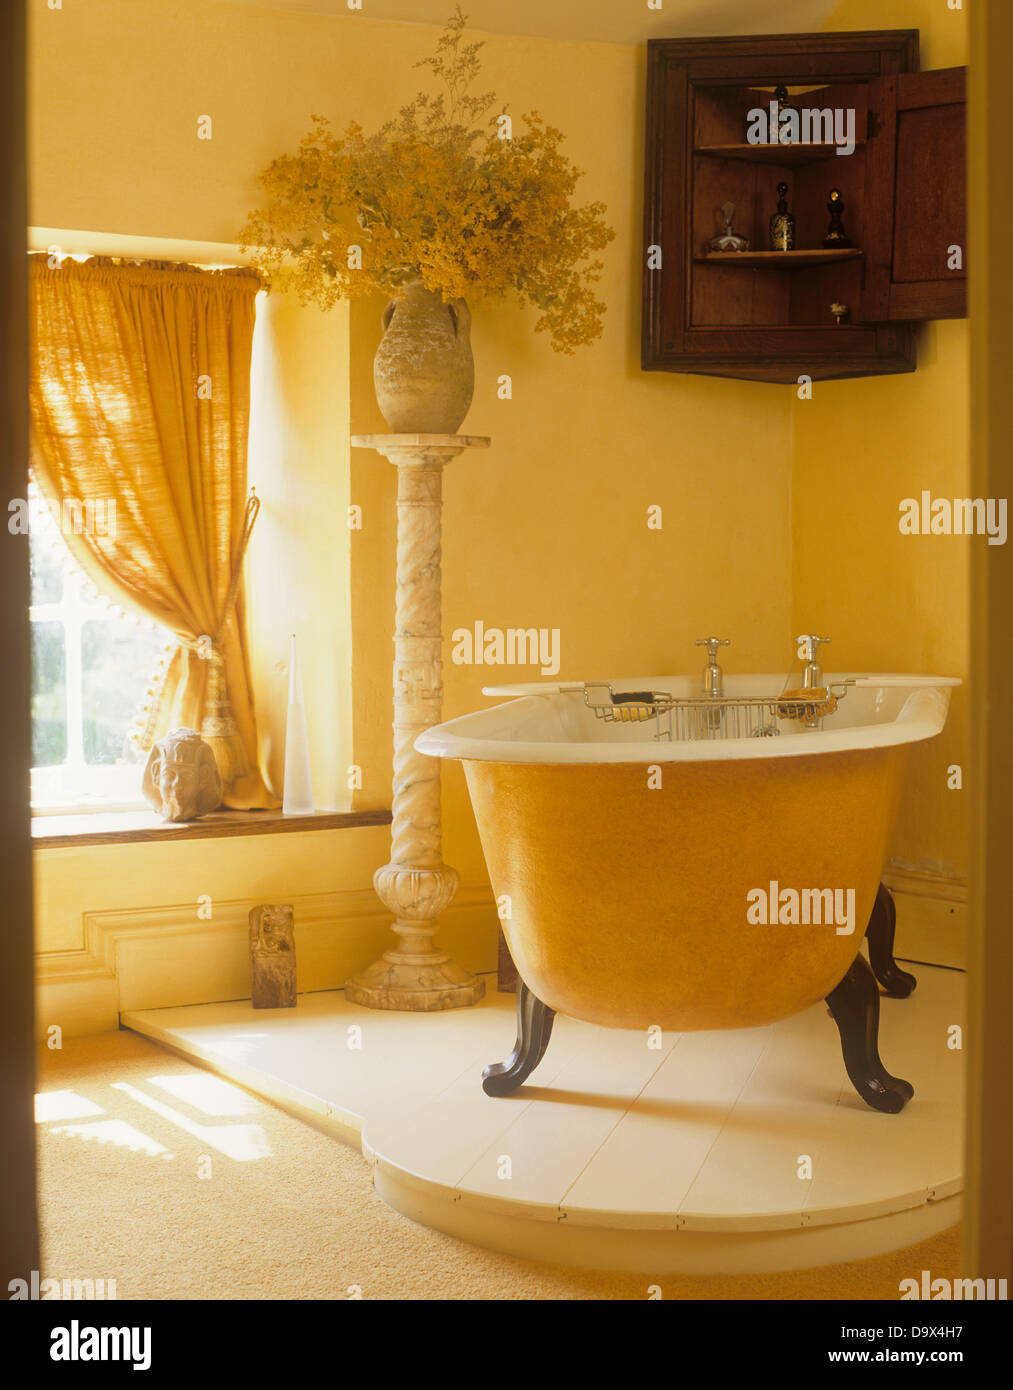 Claw foot bath on raised floor in yellow bathroom with antique ...